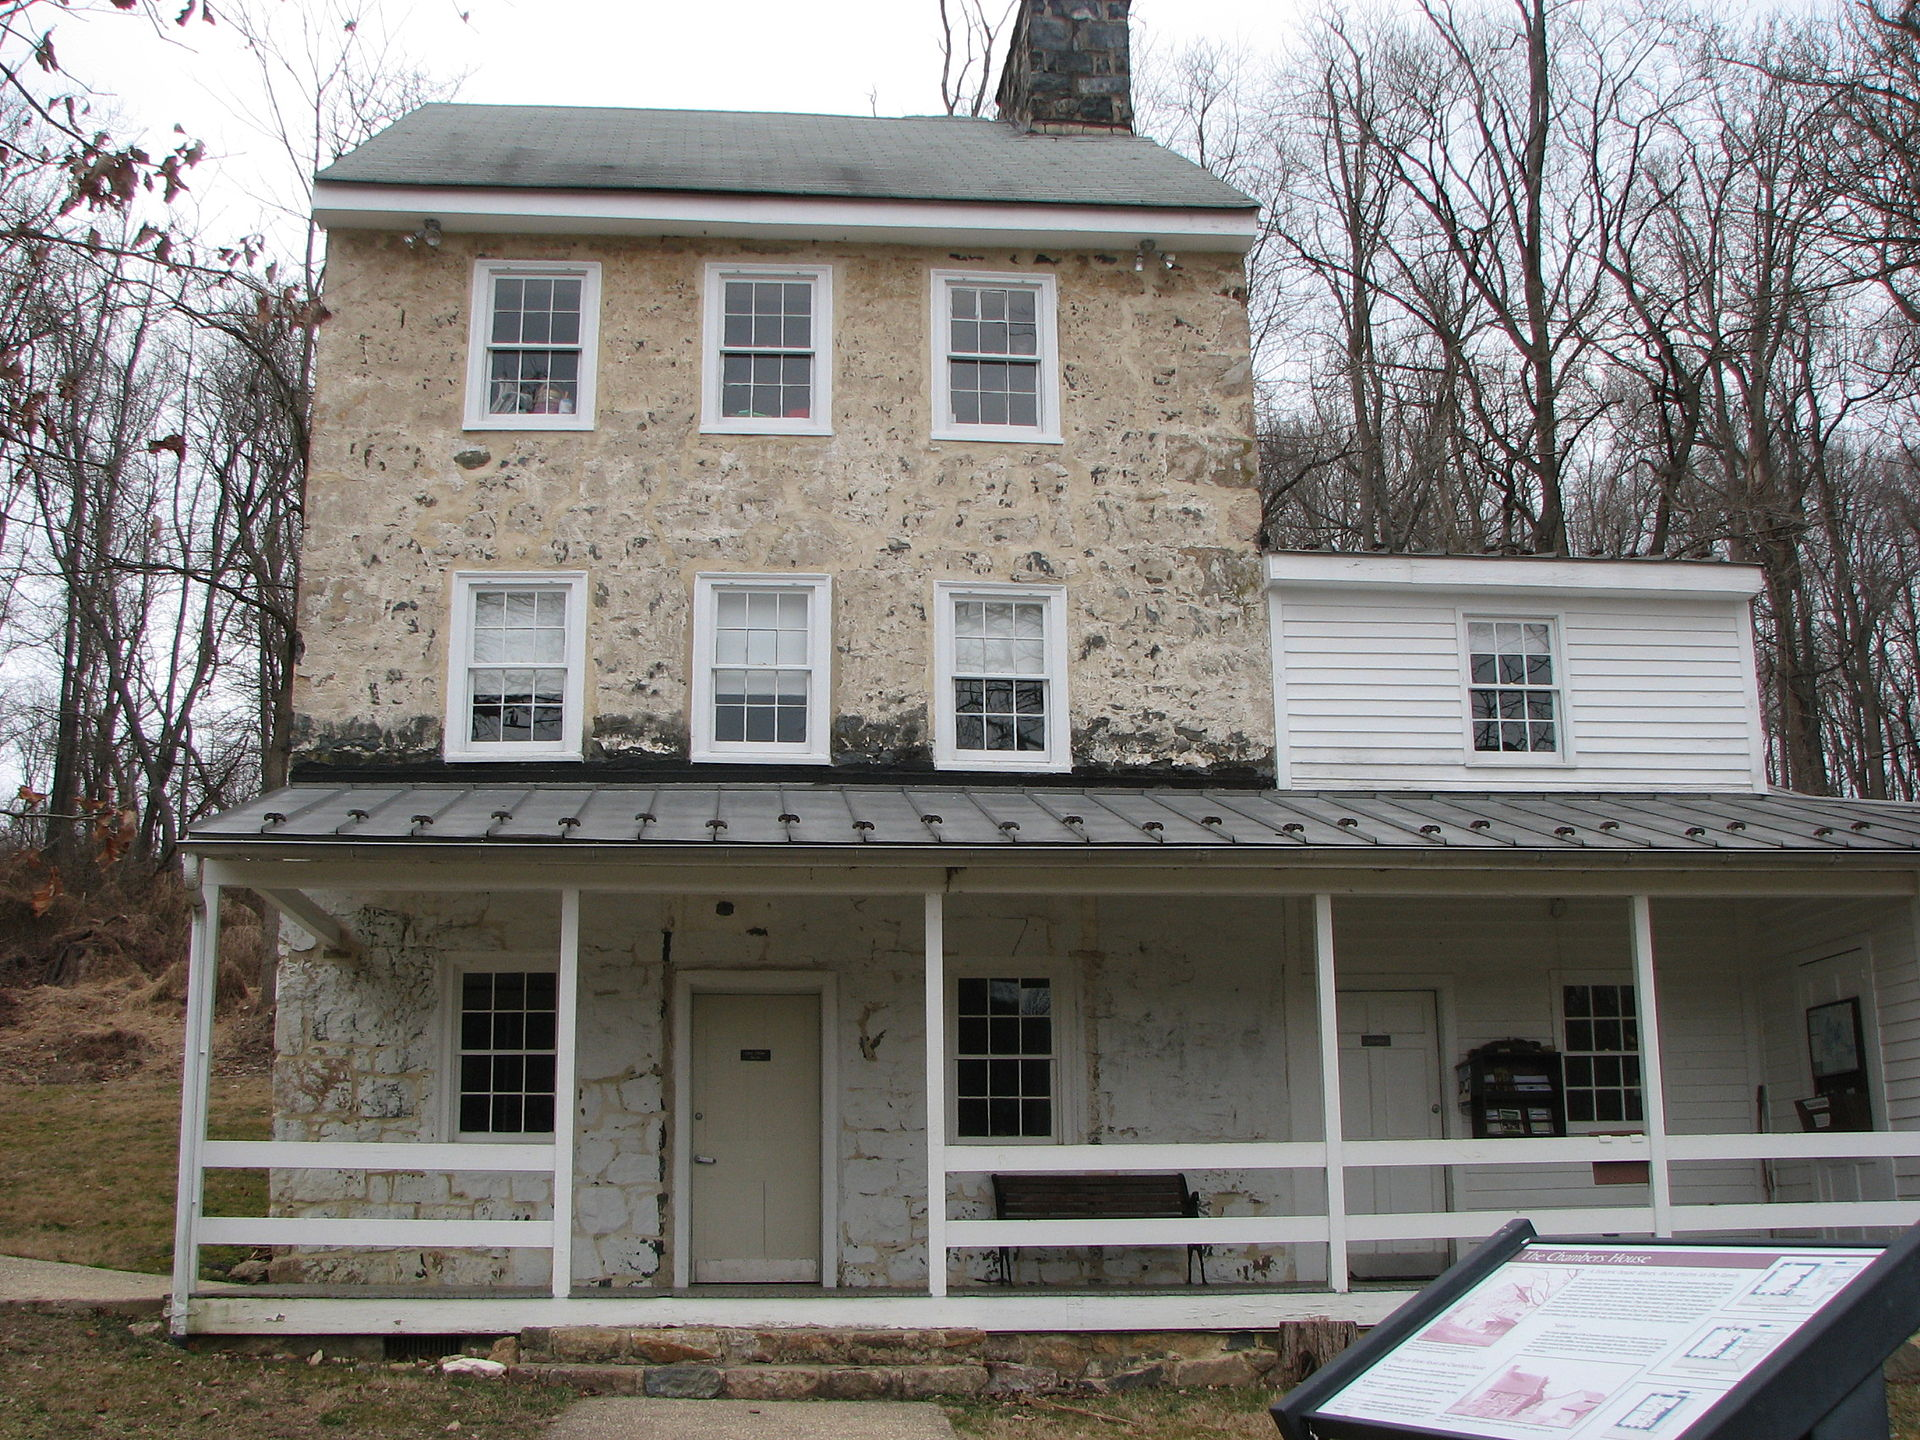 The Chambers House, now the White Clay Creek State Park nature center.